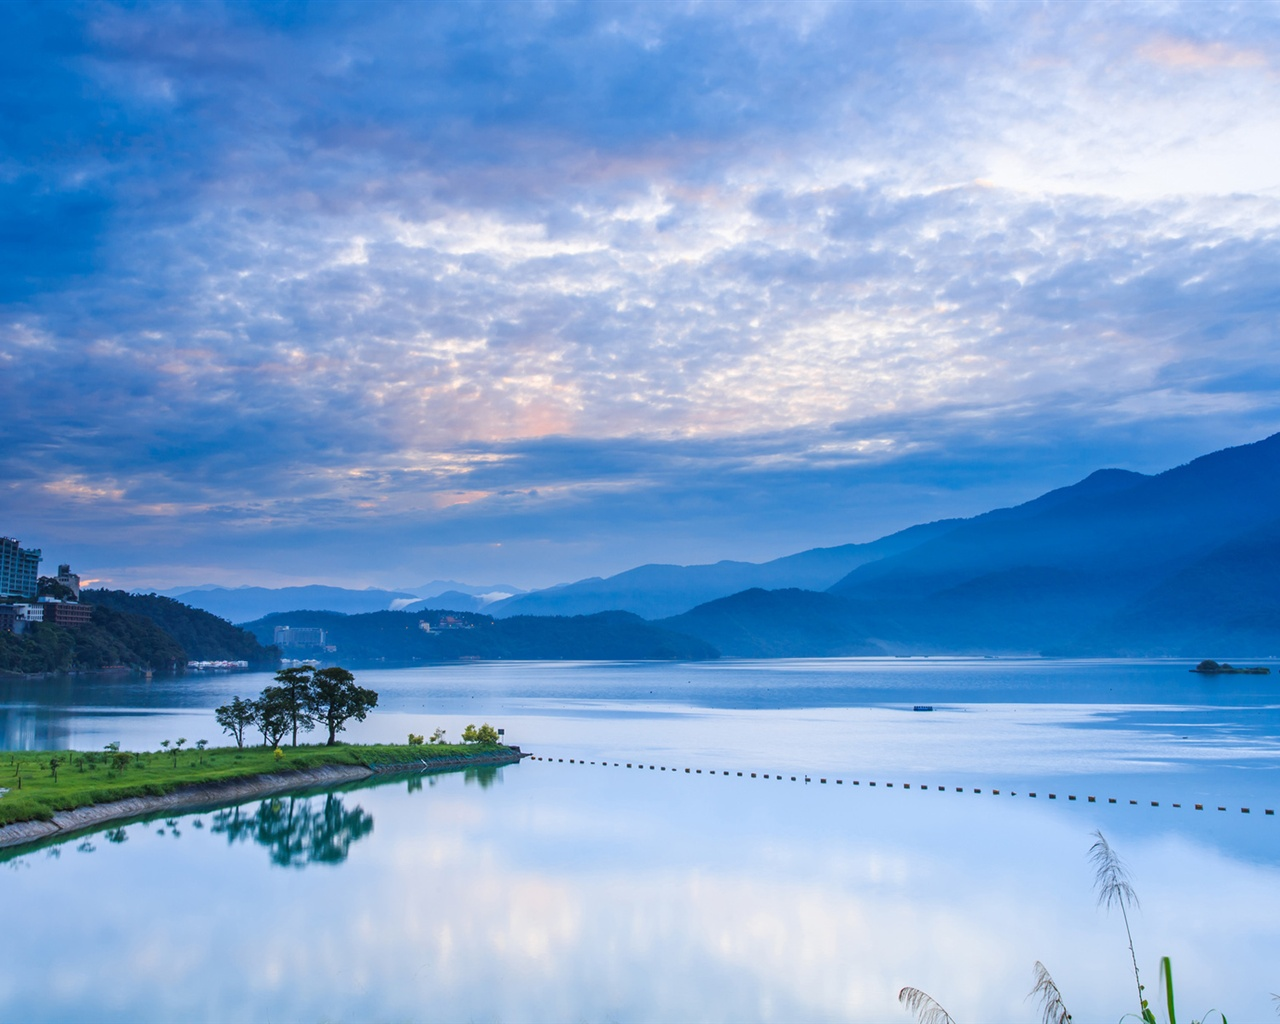 Morning sunrise mountains blue sky lake reflection wallpaper